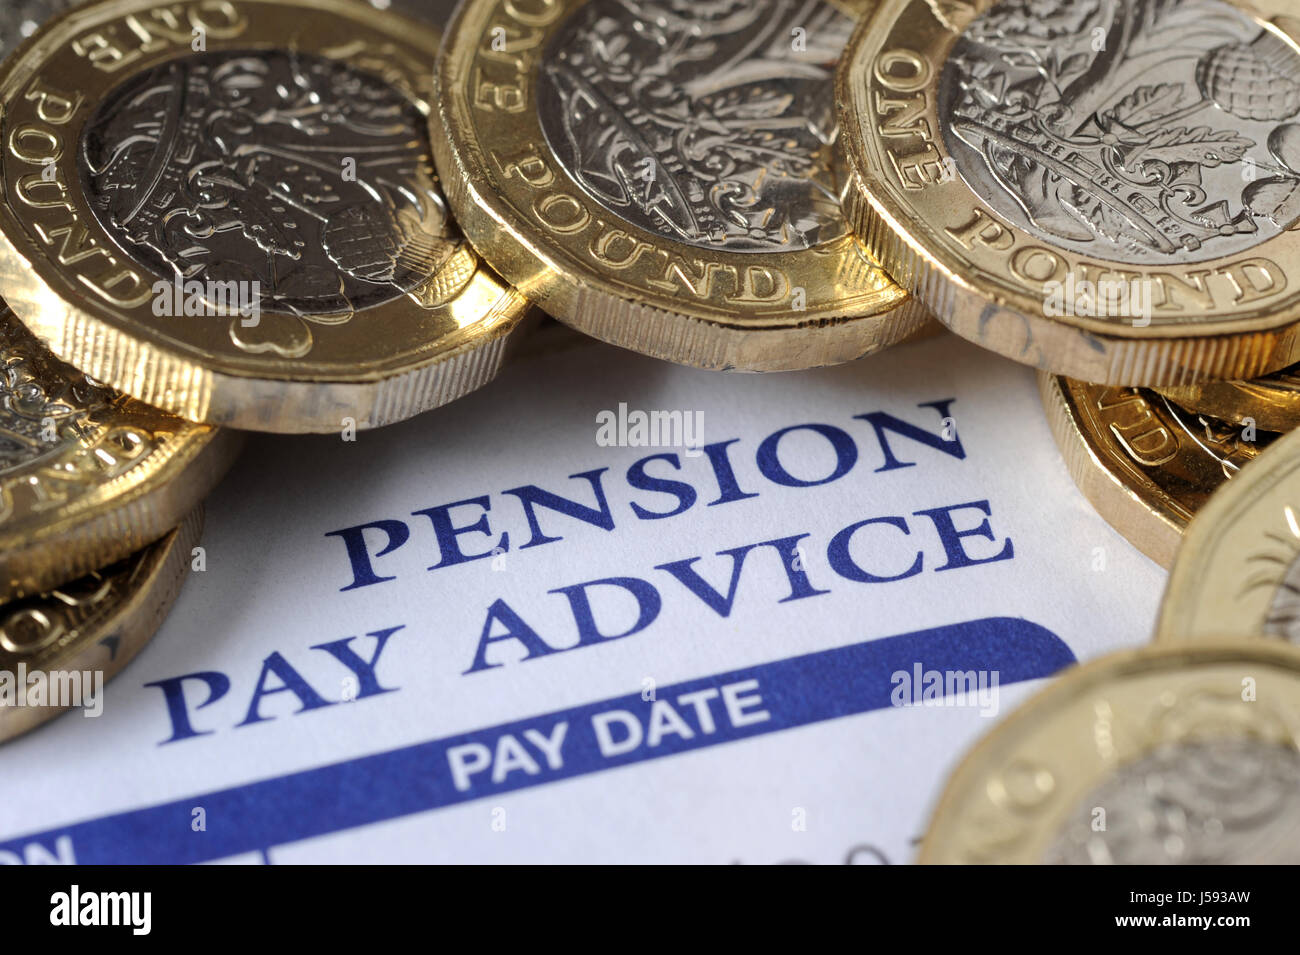 COMPANY PENSION PAY ADVICE SLIP WITH NEW ONE POUND COINS RE PENSIONS INCOME RETIREMENT PENSIONERS WAGES HOUSEHOLD - Stock Image